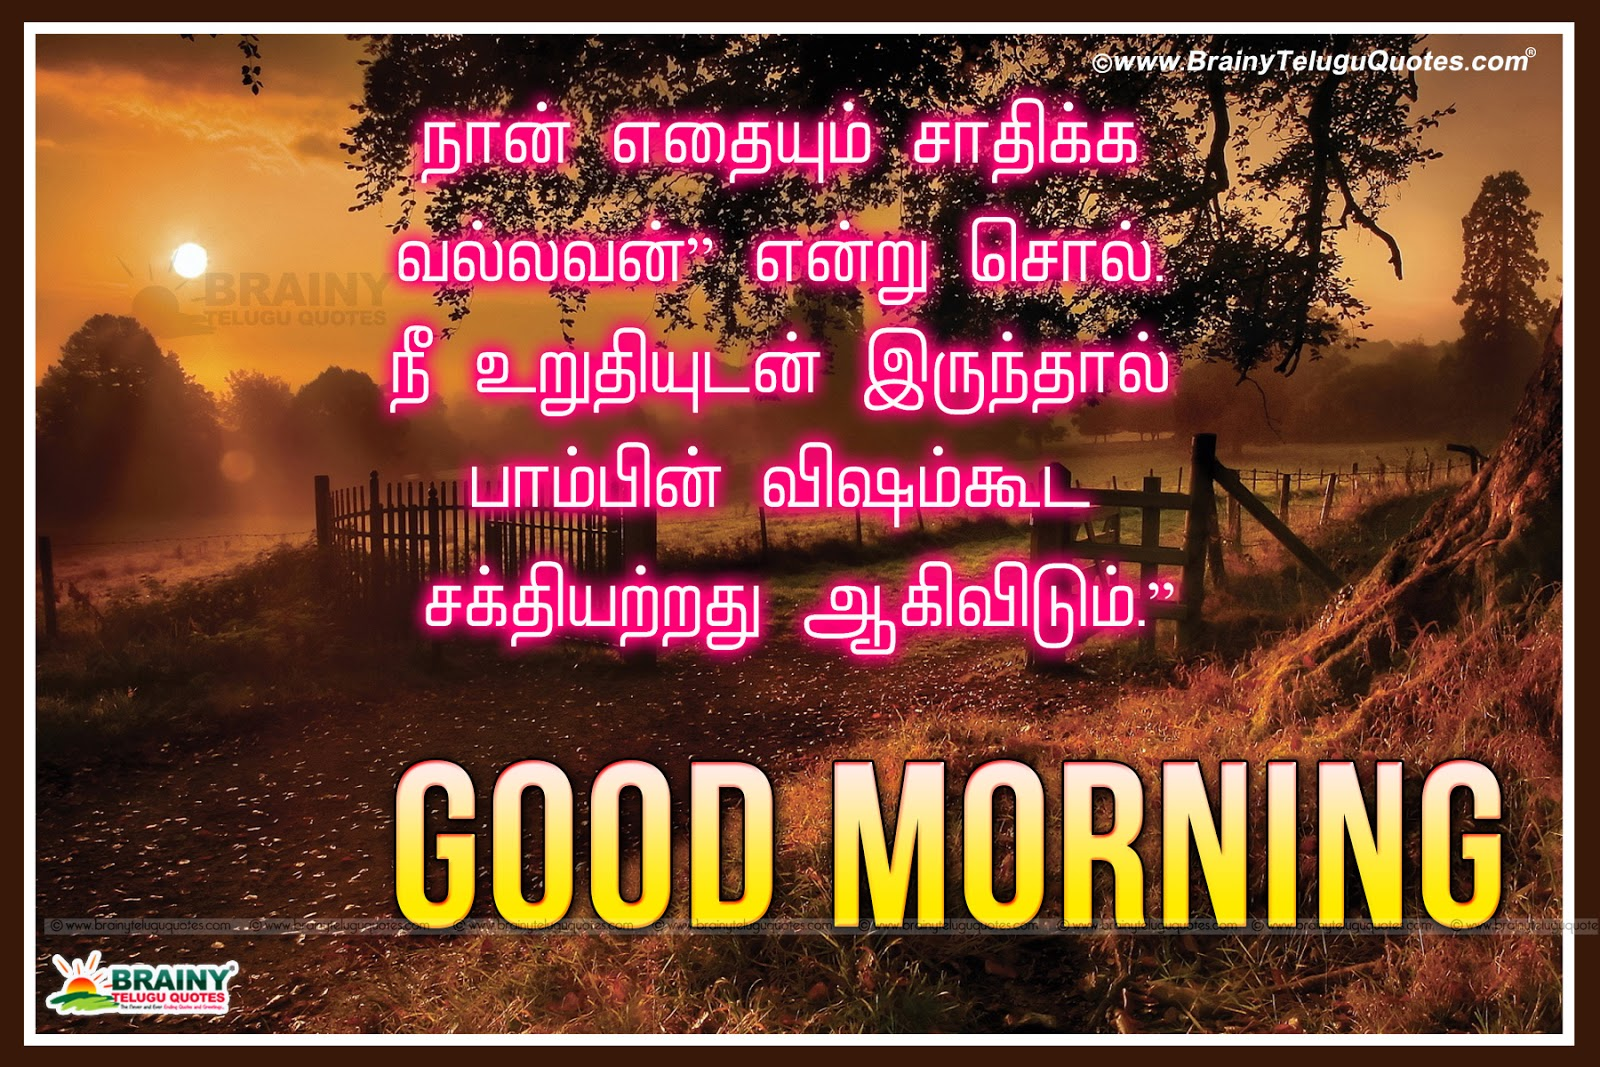 tamil good morning kavithaigal greetings with inspirational quotes messages wishes